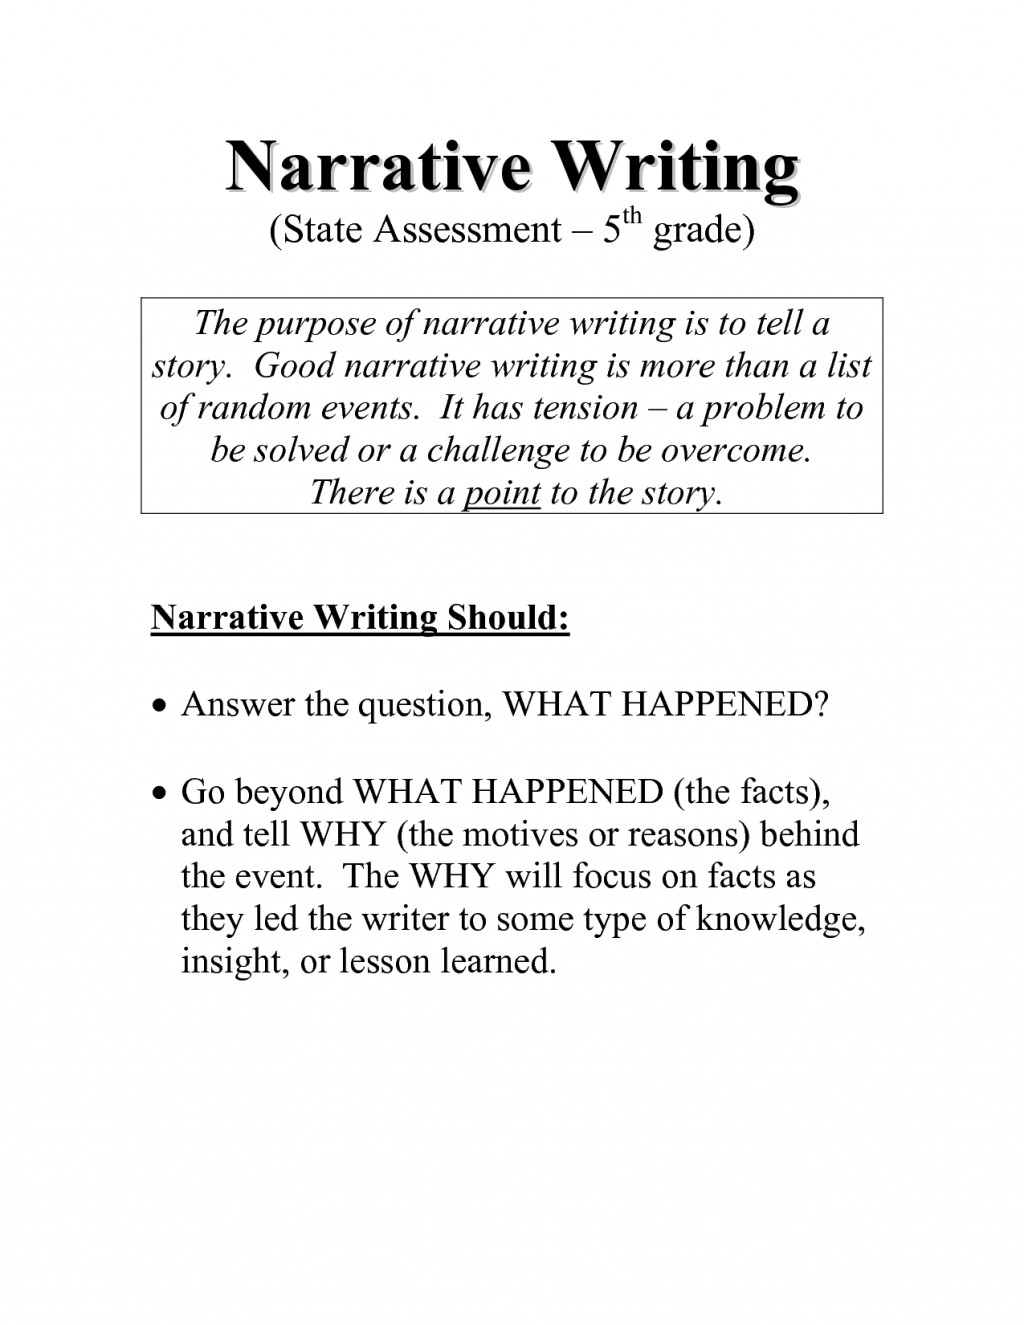 012 Essay Writing Prompts Example Formidable Narrative For Middle School 5 Paragraph 5th Grade Large